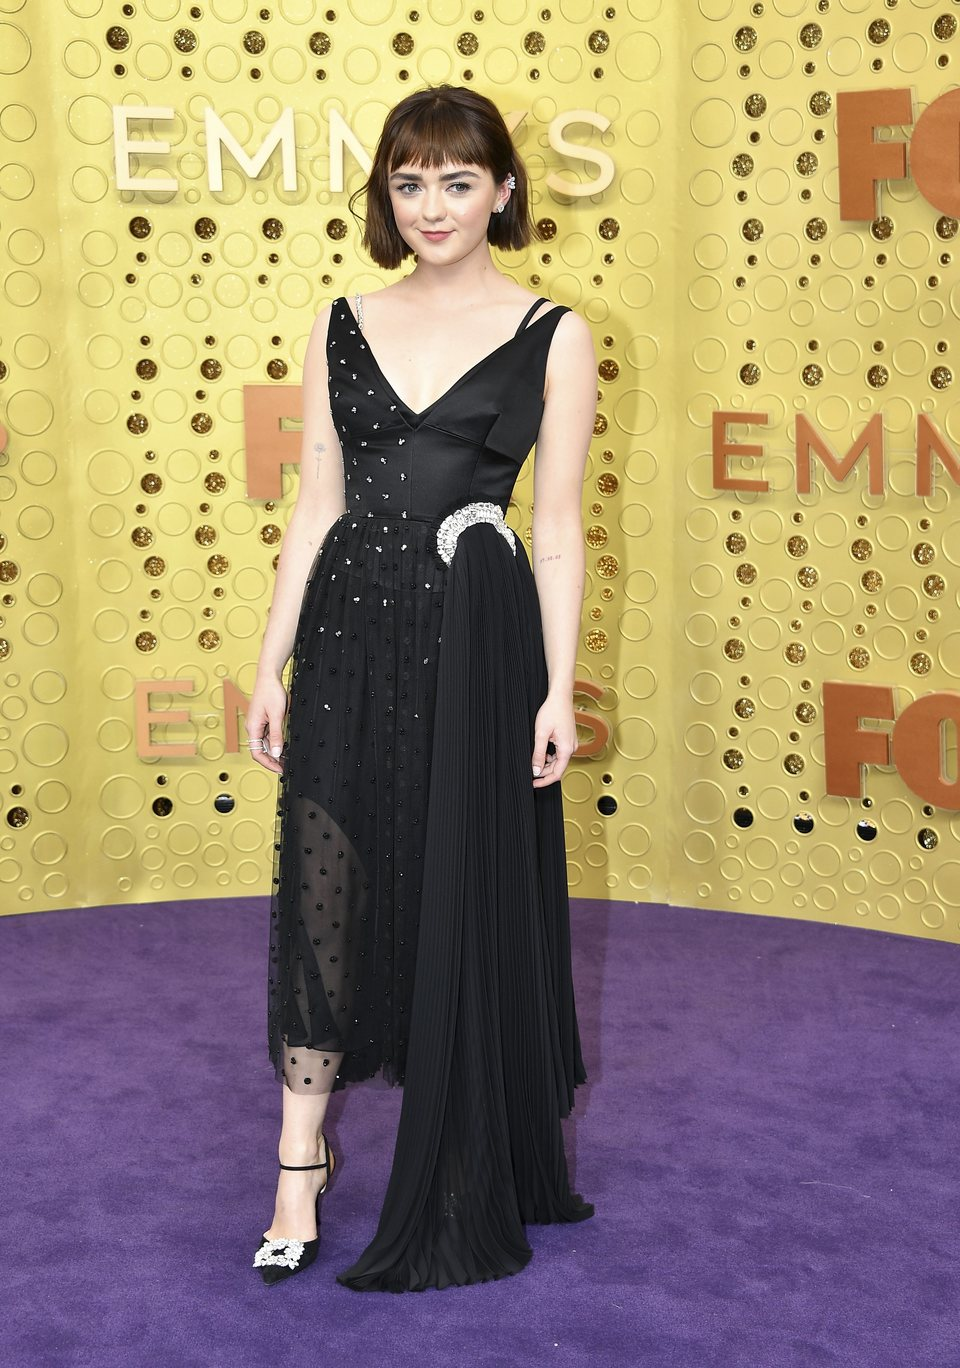 Maisie Williams at the Emmy 2019 red carpet